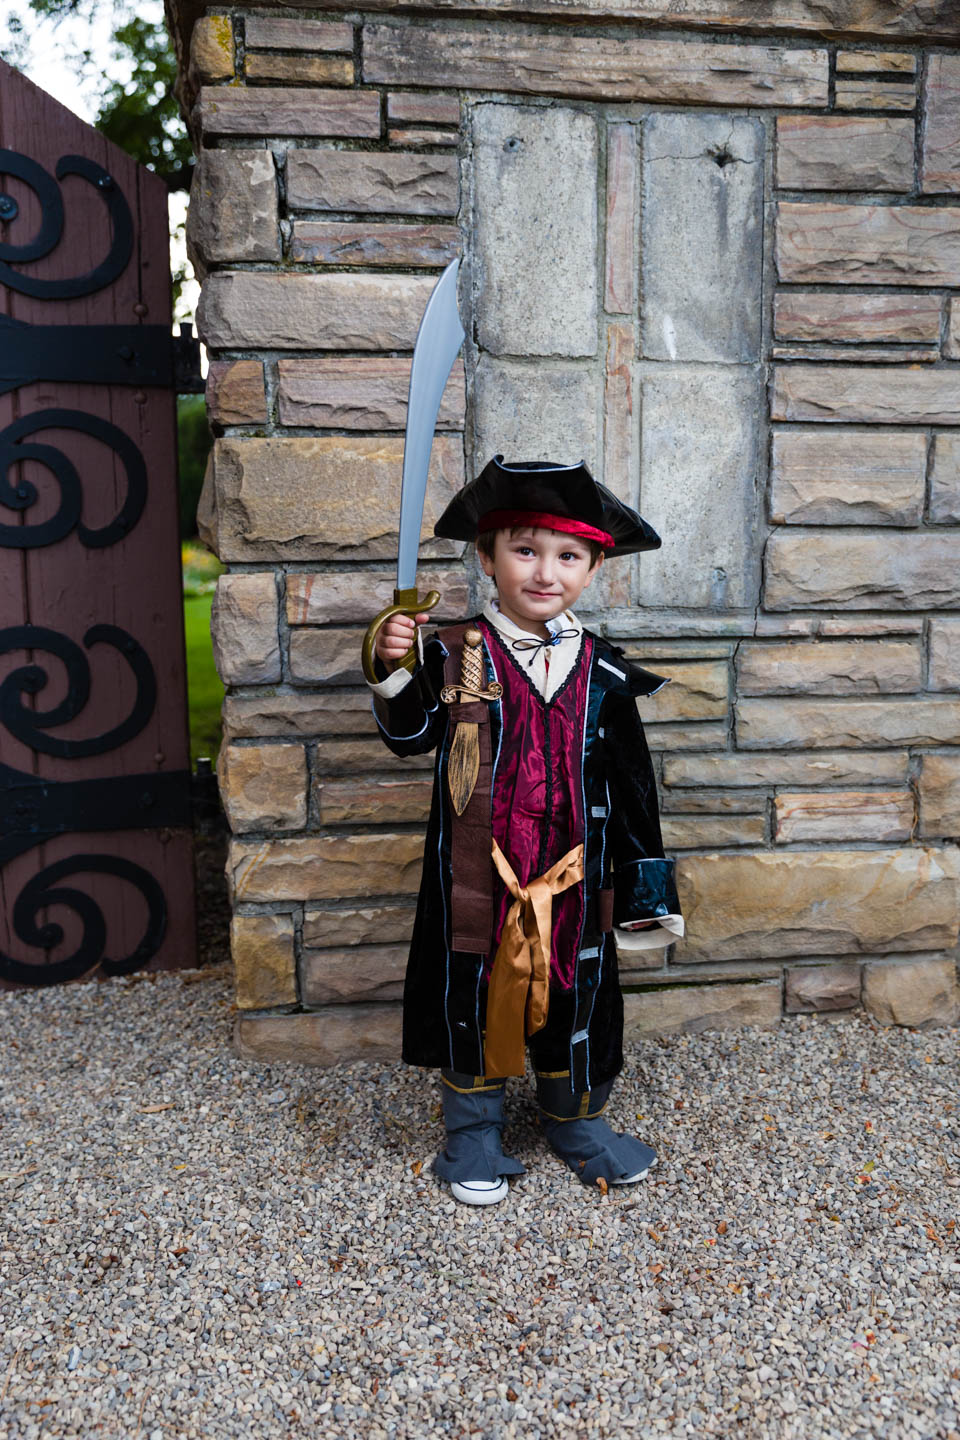 Alexander dressed as a pirate. My guess is Captain Jack Sparrow